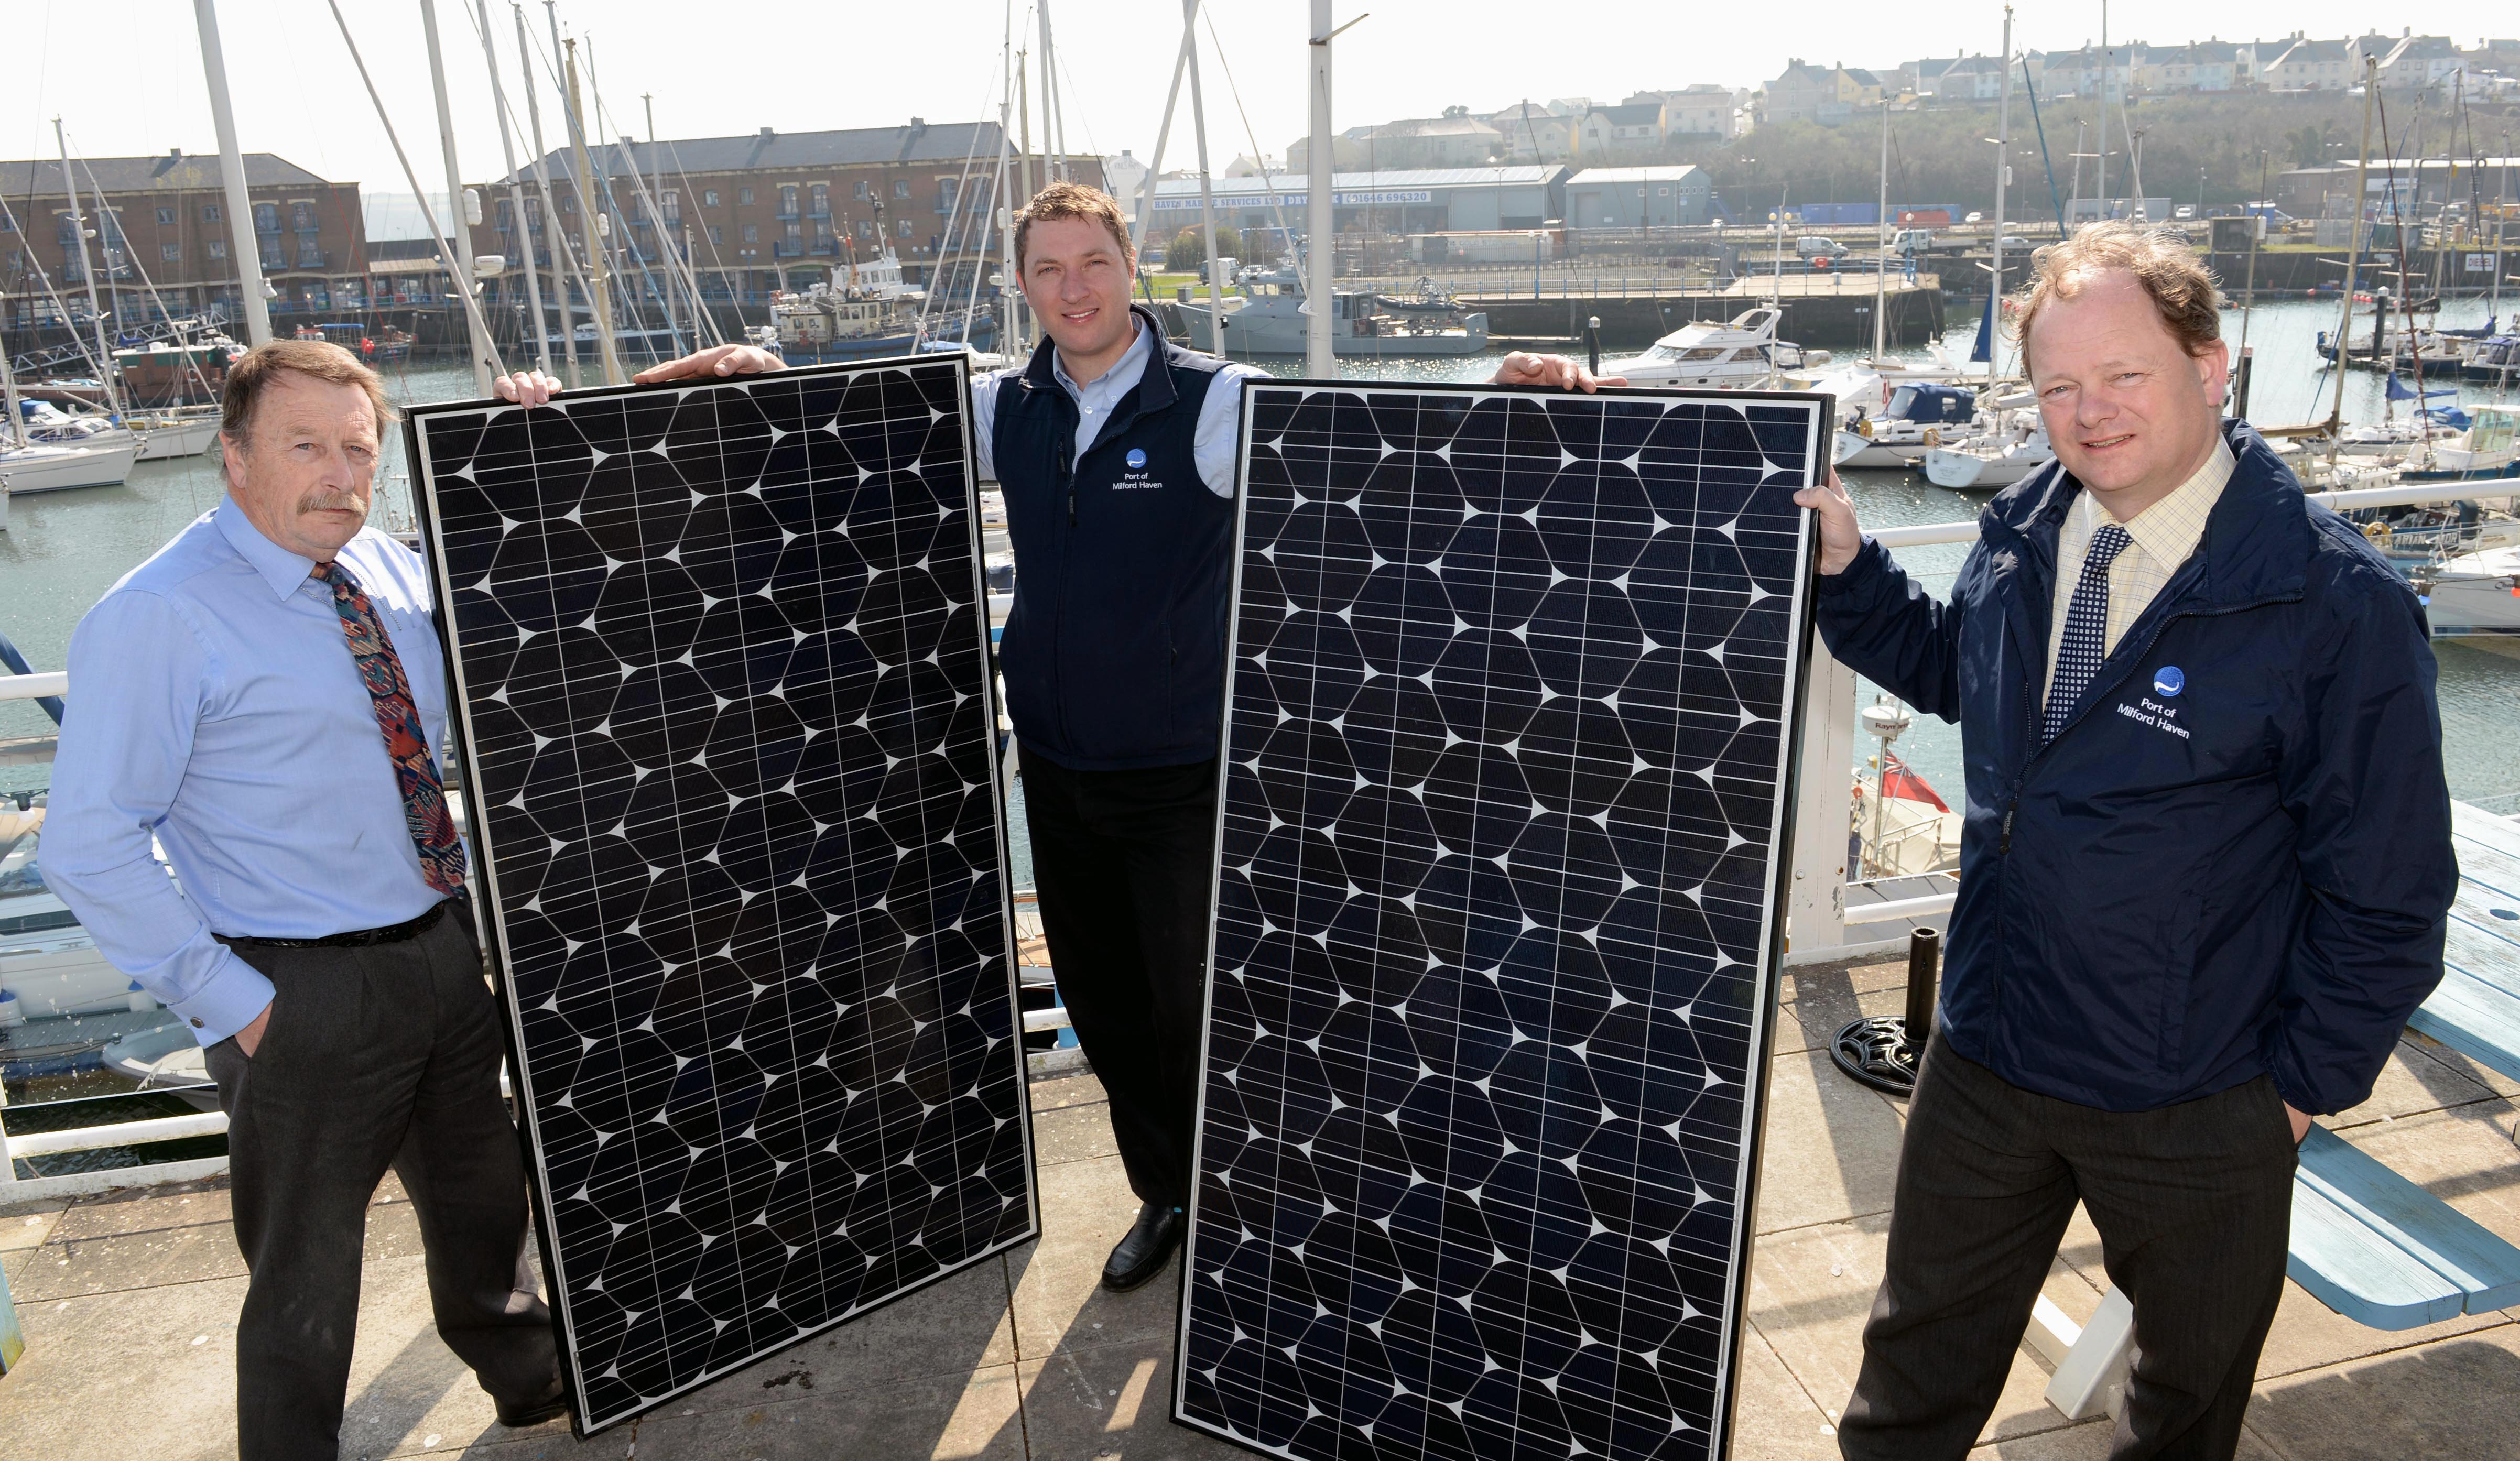 Dave Levell, Environmental Manager; Tim James, Energy Manager and Alec Don, Chief Executive of the Port of Milford Haven celebrate becoming carbon neutral